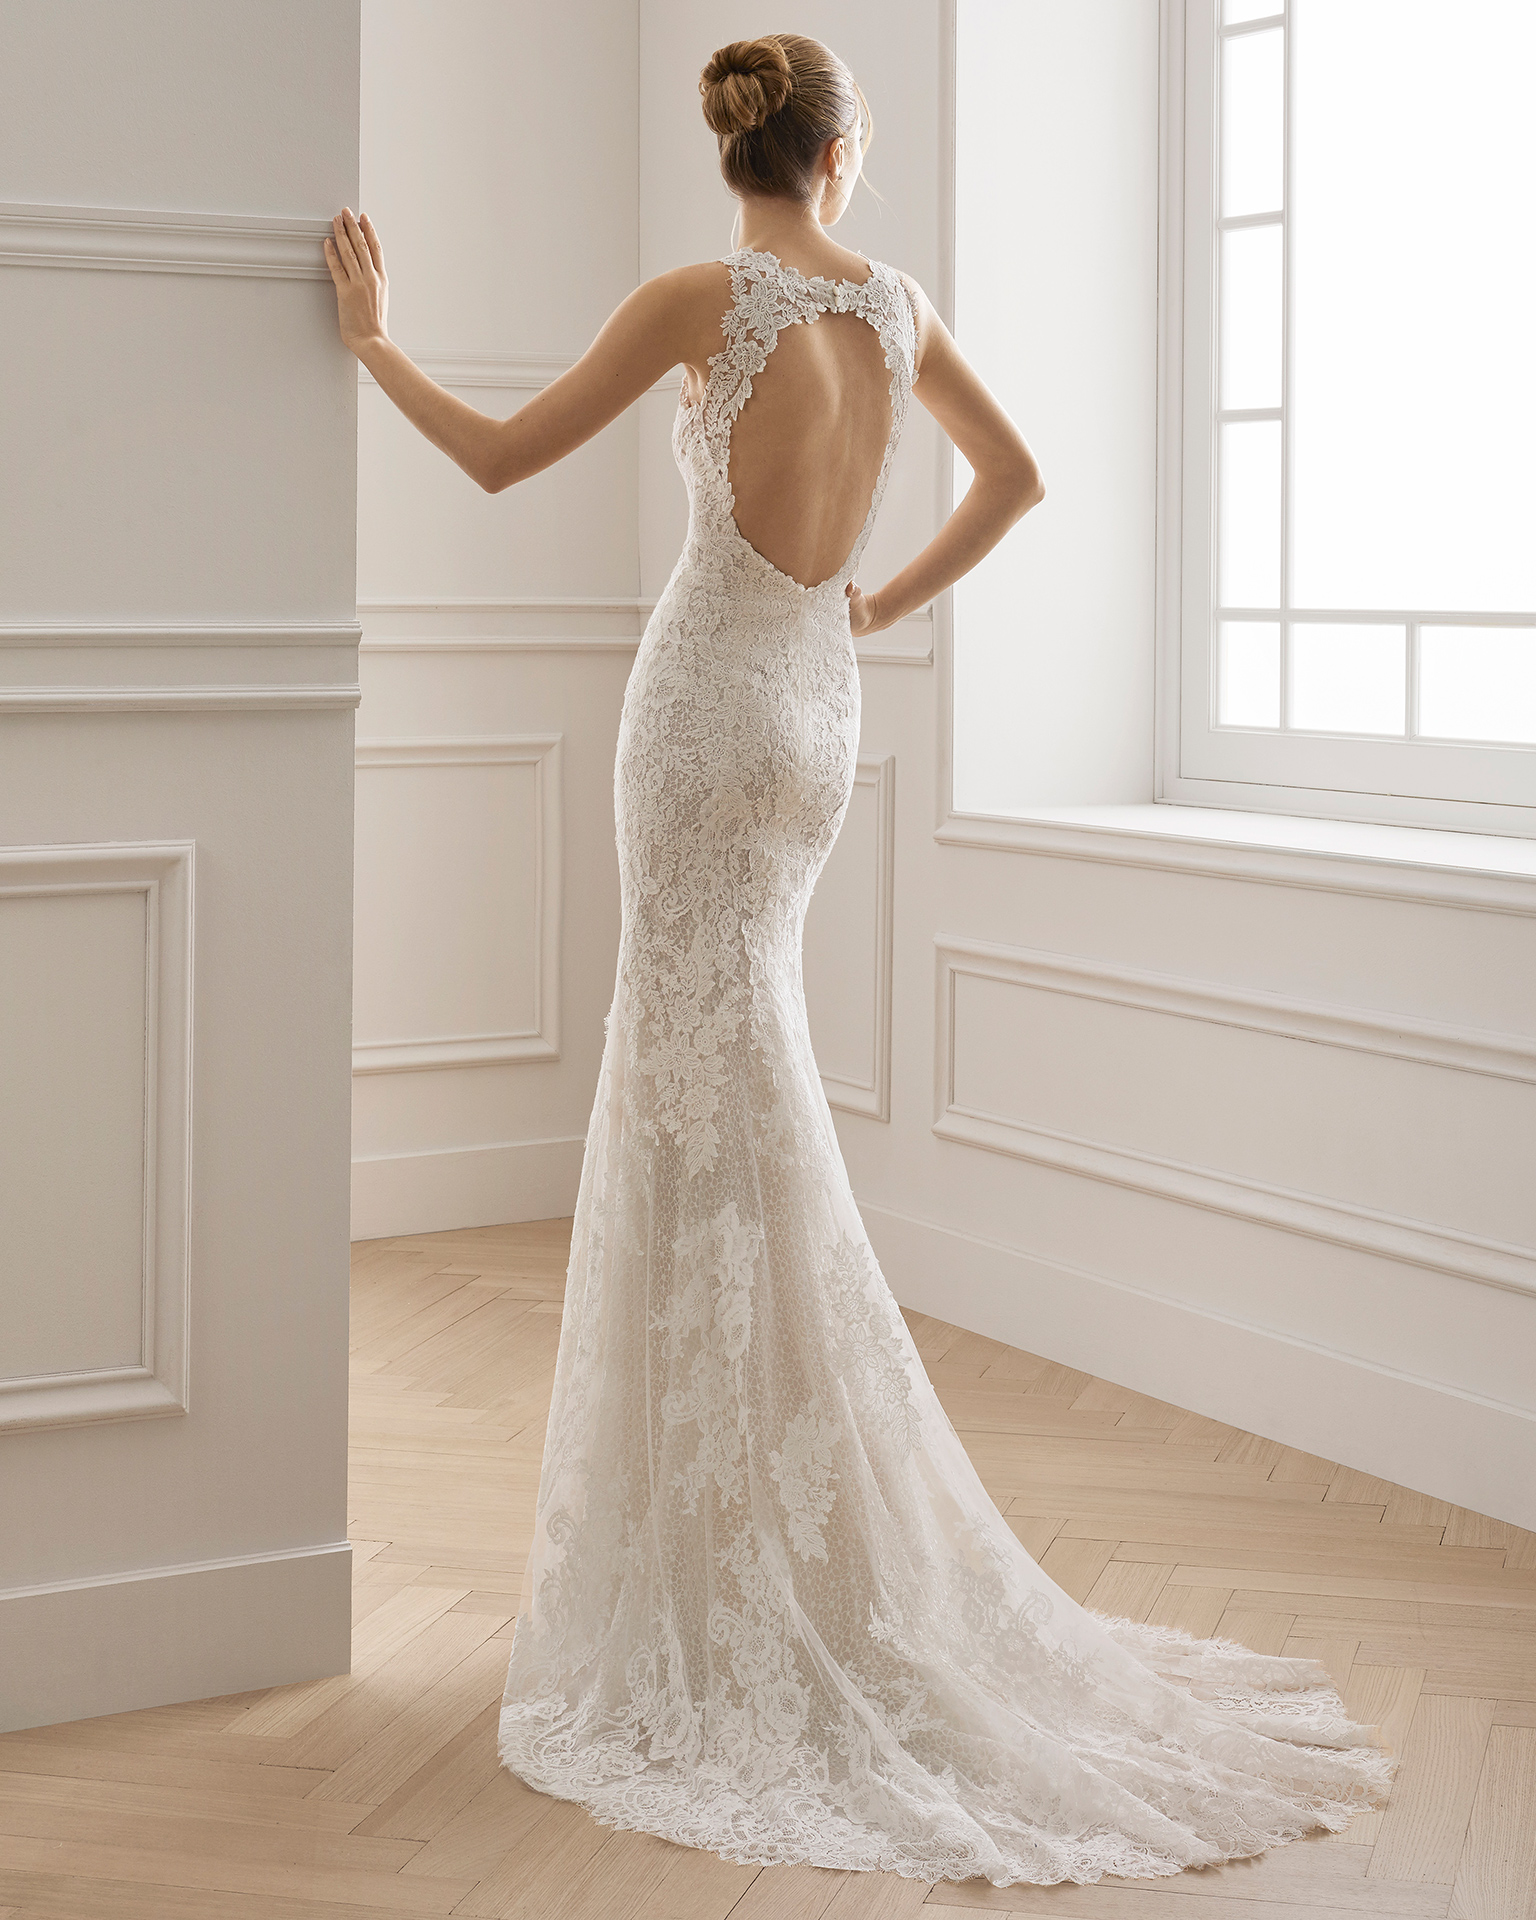 Mermaid-style lace wedding dress. Halter neckline and open back with front slit. Available in natural/nude. 2019 AIRE BARCELONA Collection.